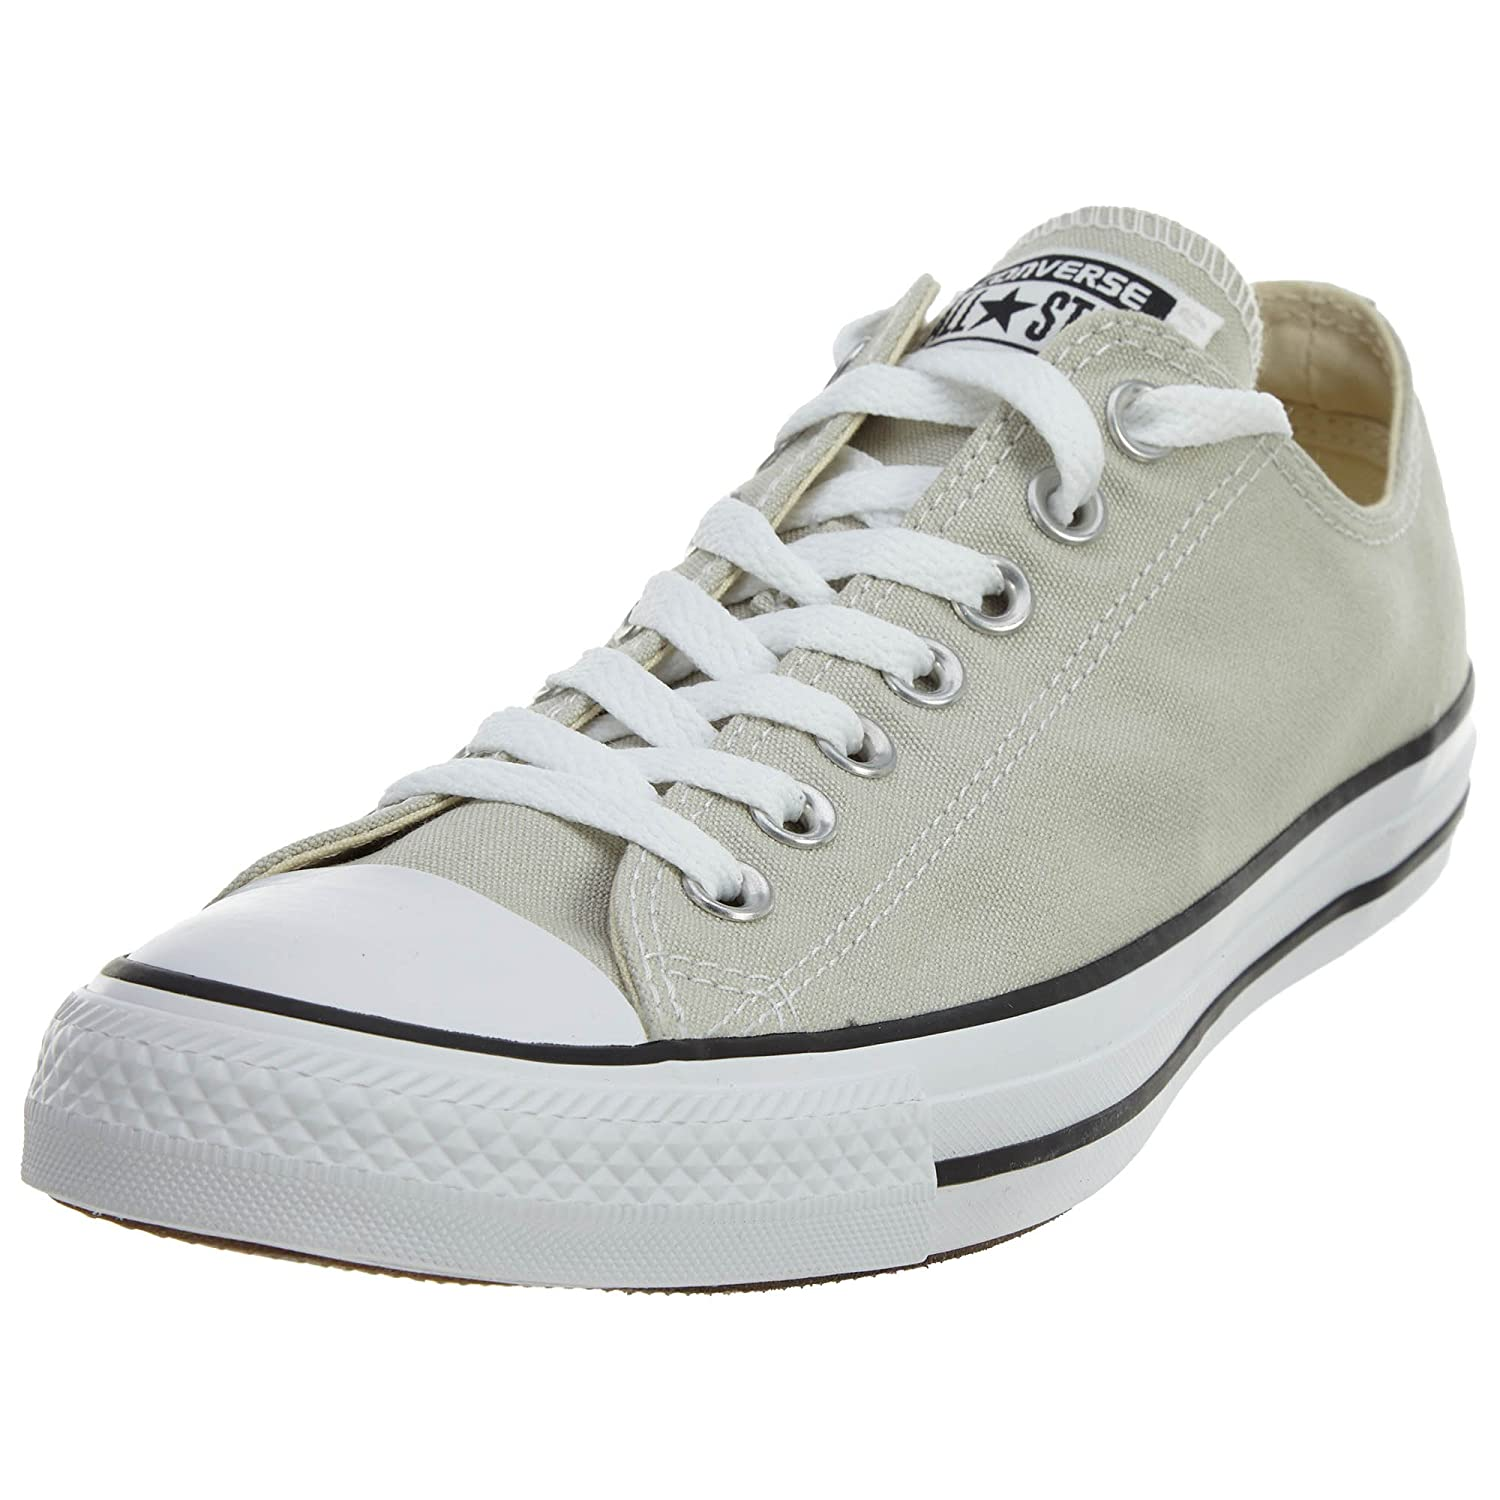 46ff693ff1581d Converse AS Hi Can charcoal 1J793 Unisex-Erwachsene Sneaker 8 B(M) US Women    6 D(M) US Men